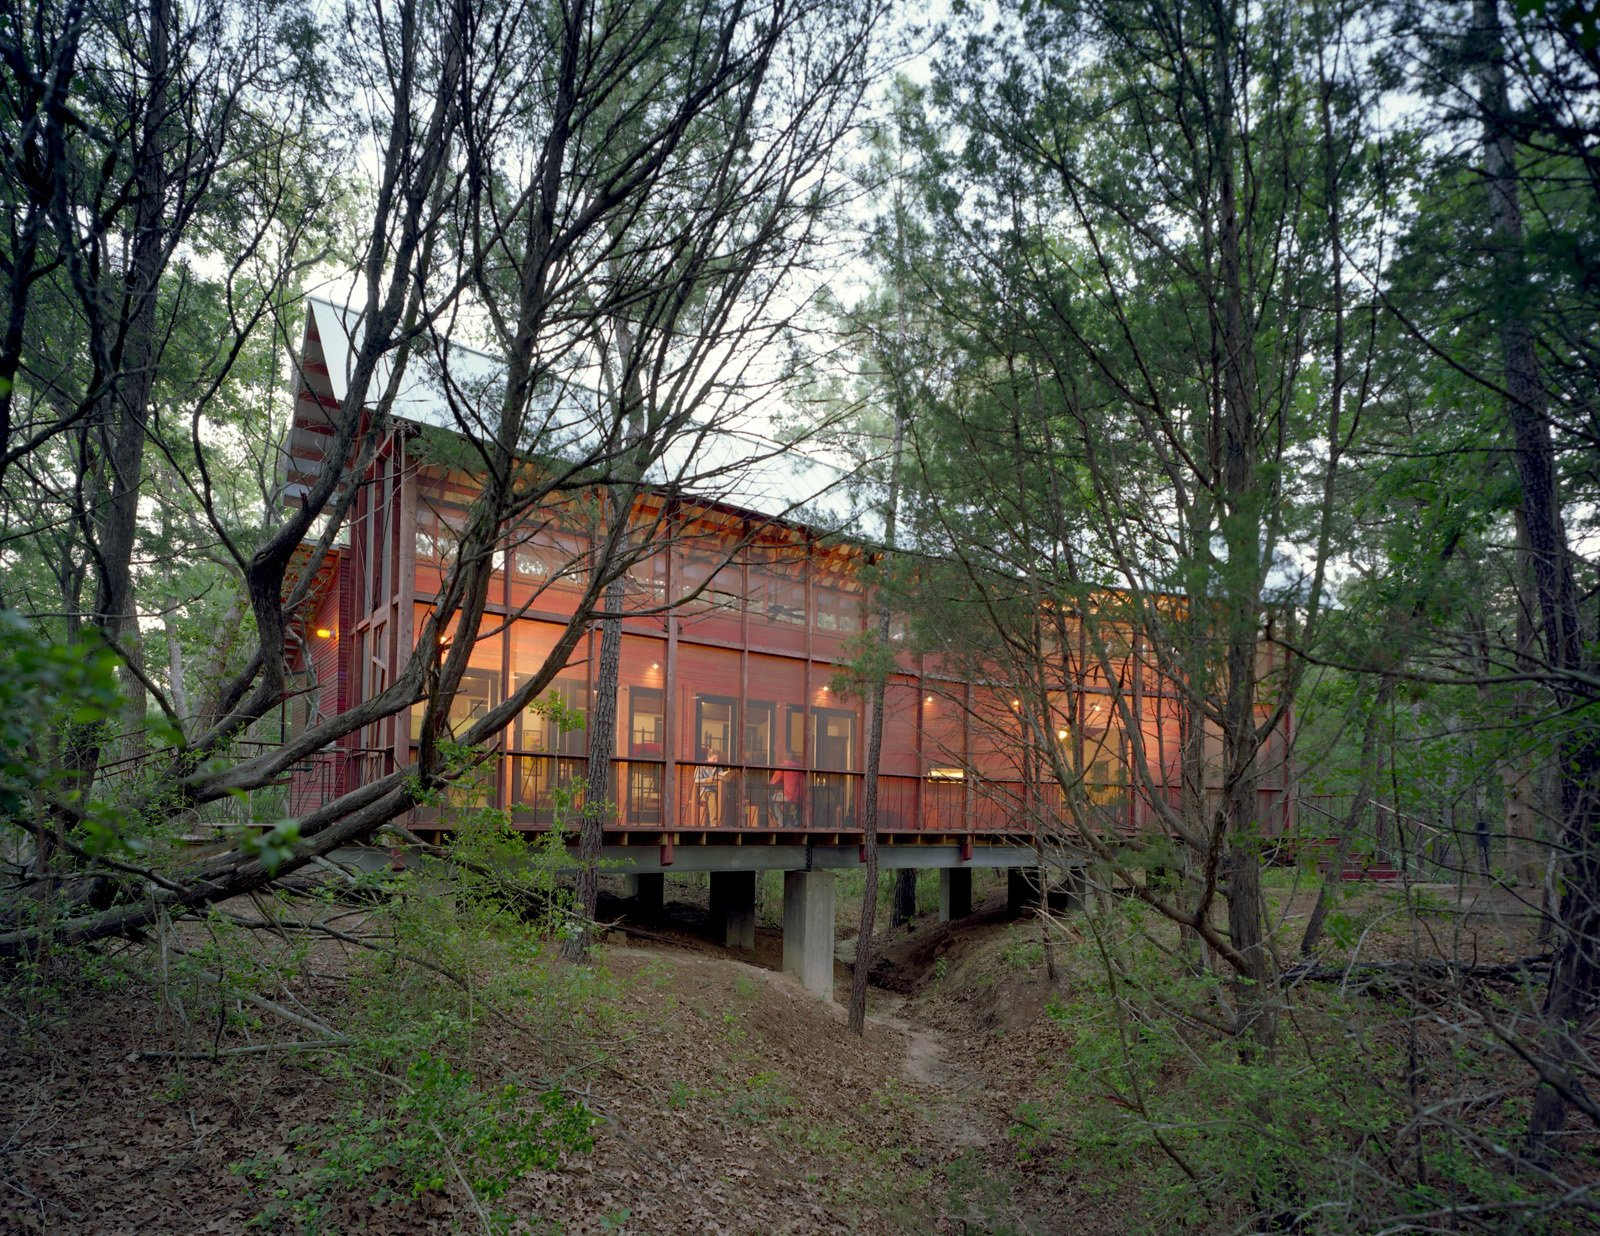 A screen porch runs the entire length of building, built over a dry creek bed on embedded concrete piers. The architect says he worked with the varying topography and native pines, turning the building 30 degrees at one point to accommodate the natural contours of the land.